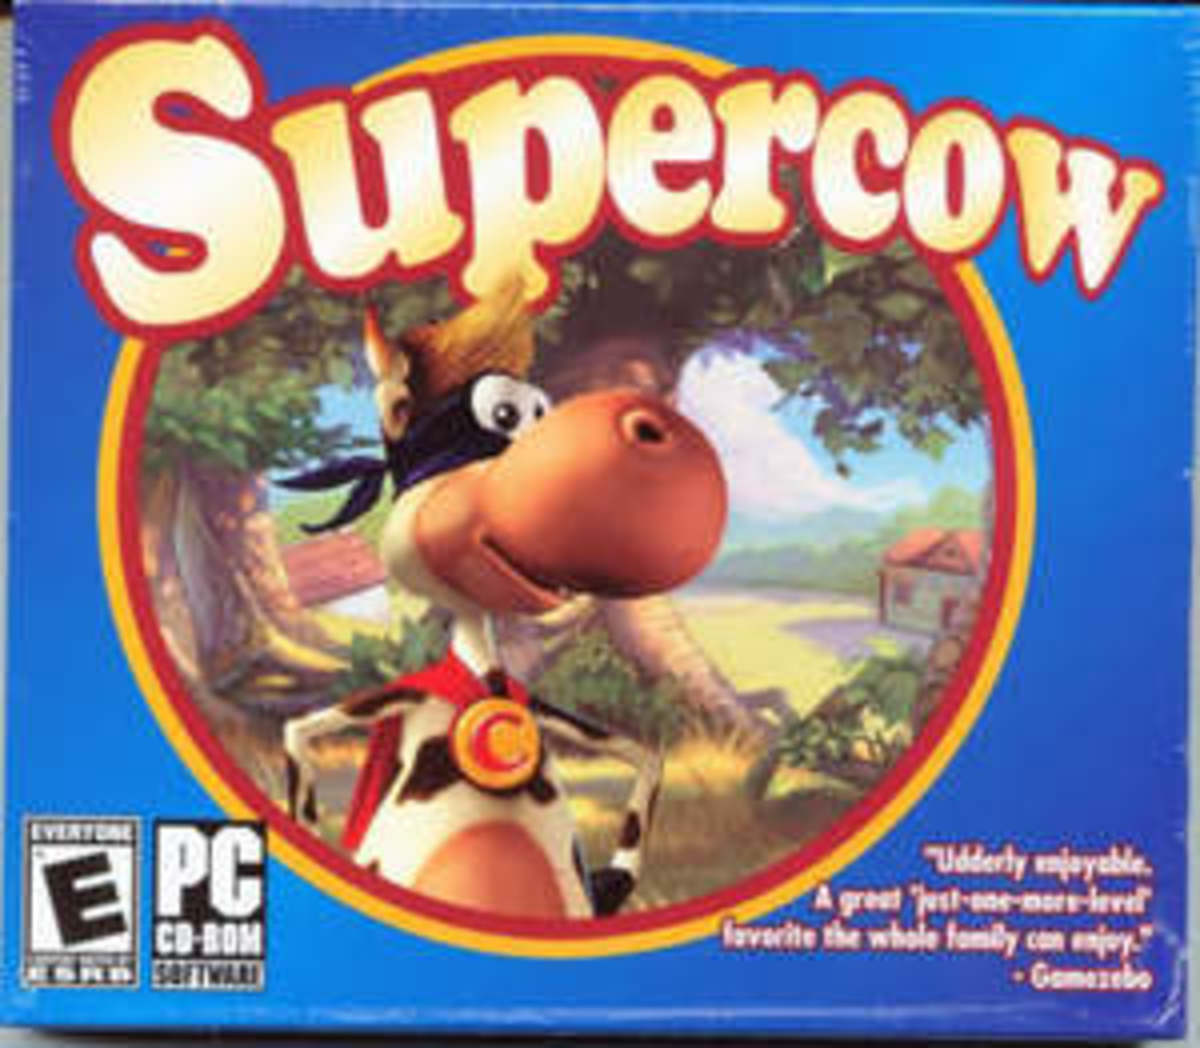 Supercow game box